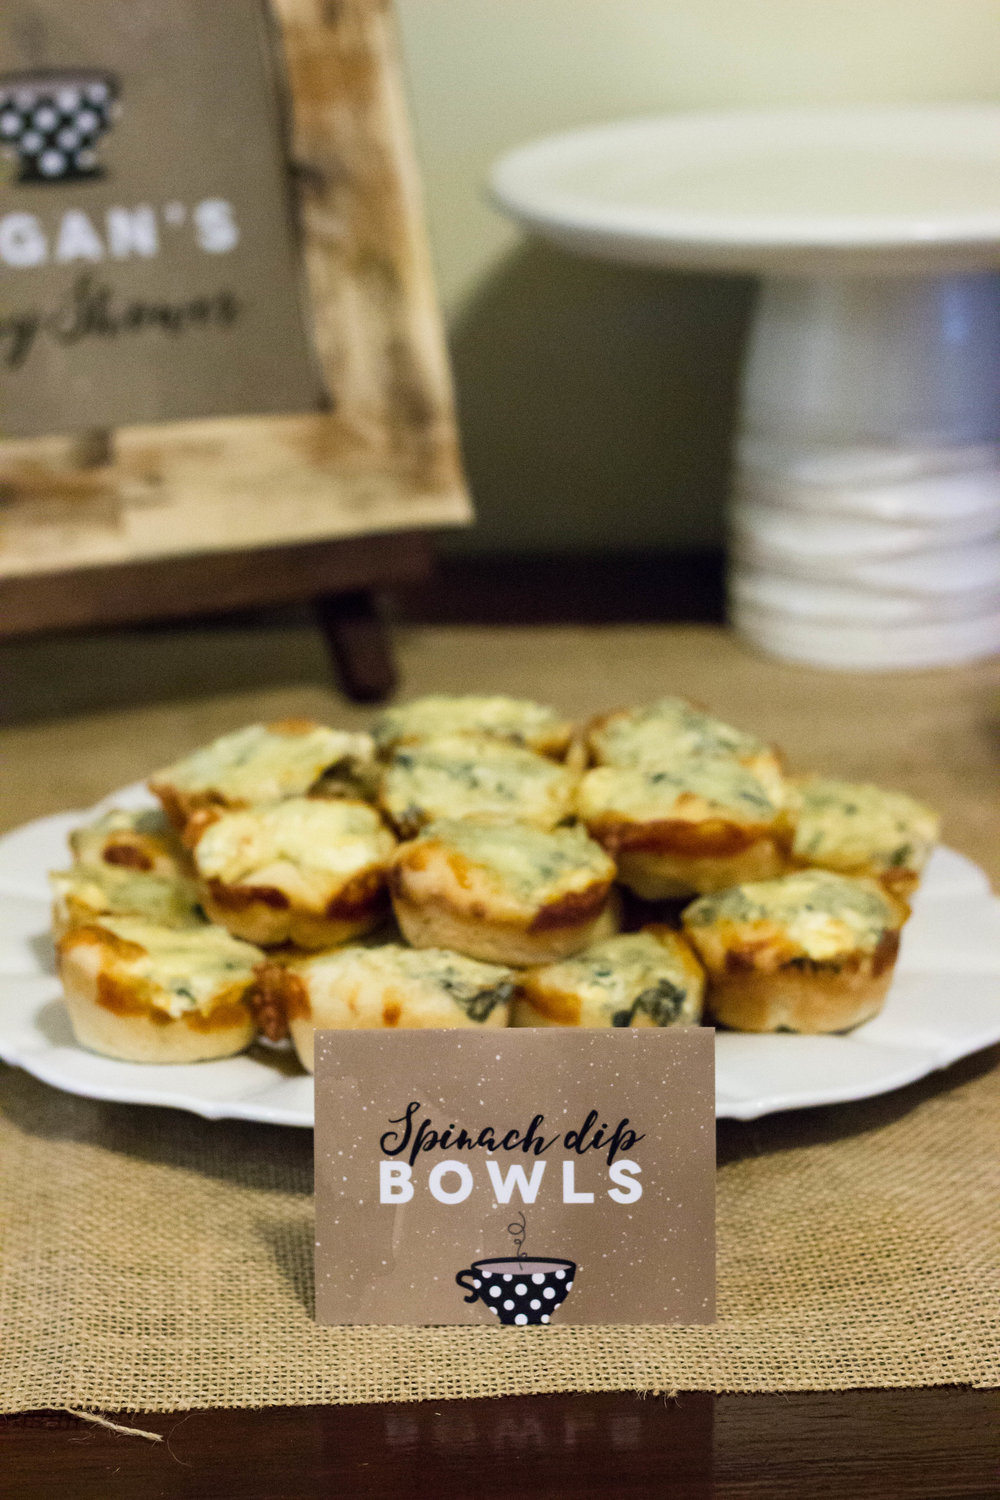 Spinach Dip Bowls, custom food cards from mkkmdesigns.com